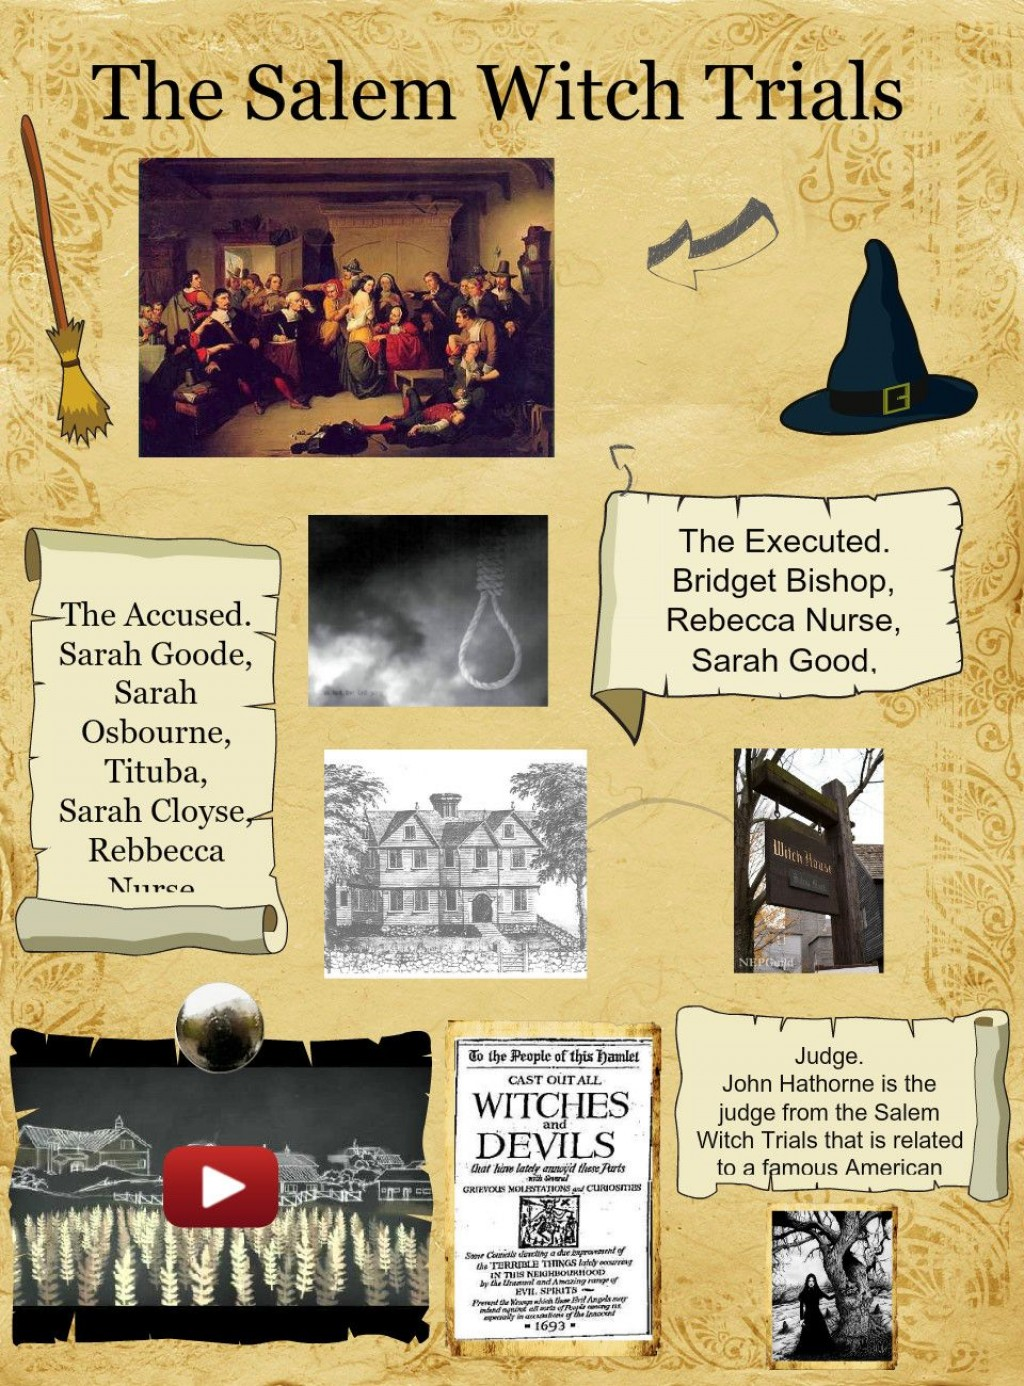 020 Research Paper Free Salem Witch Marvelous Trials Large